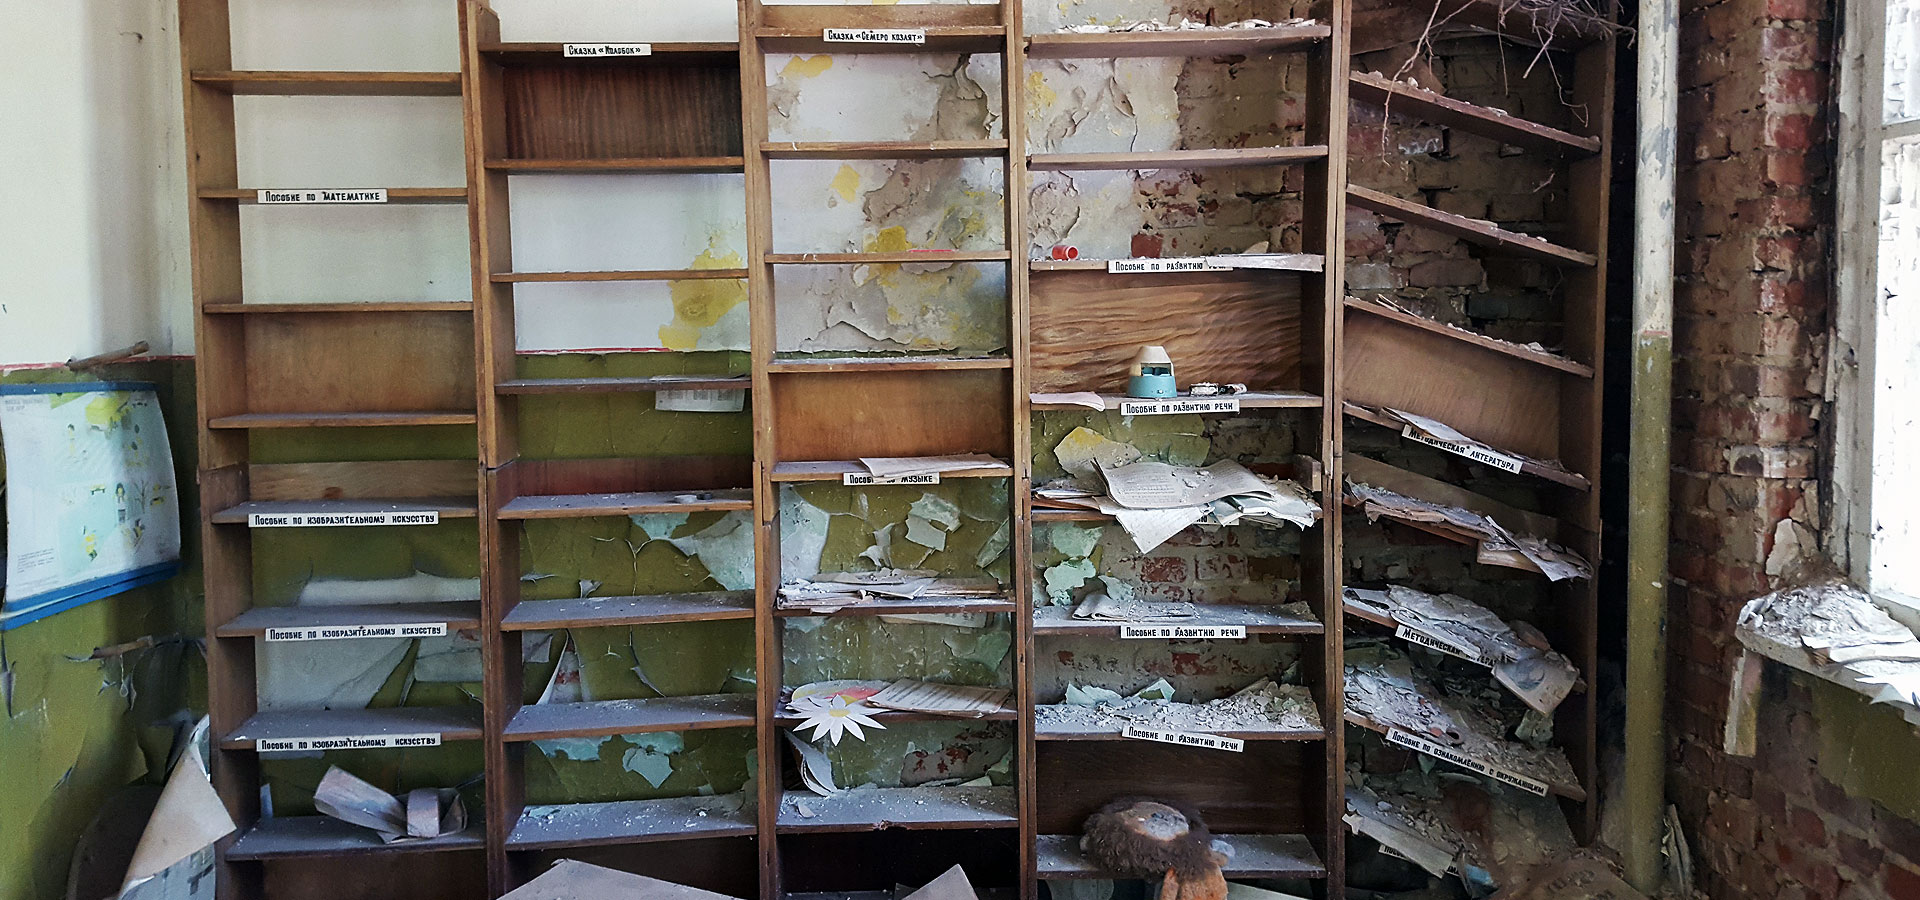 Bookshelf in Chernobyl